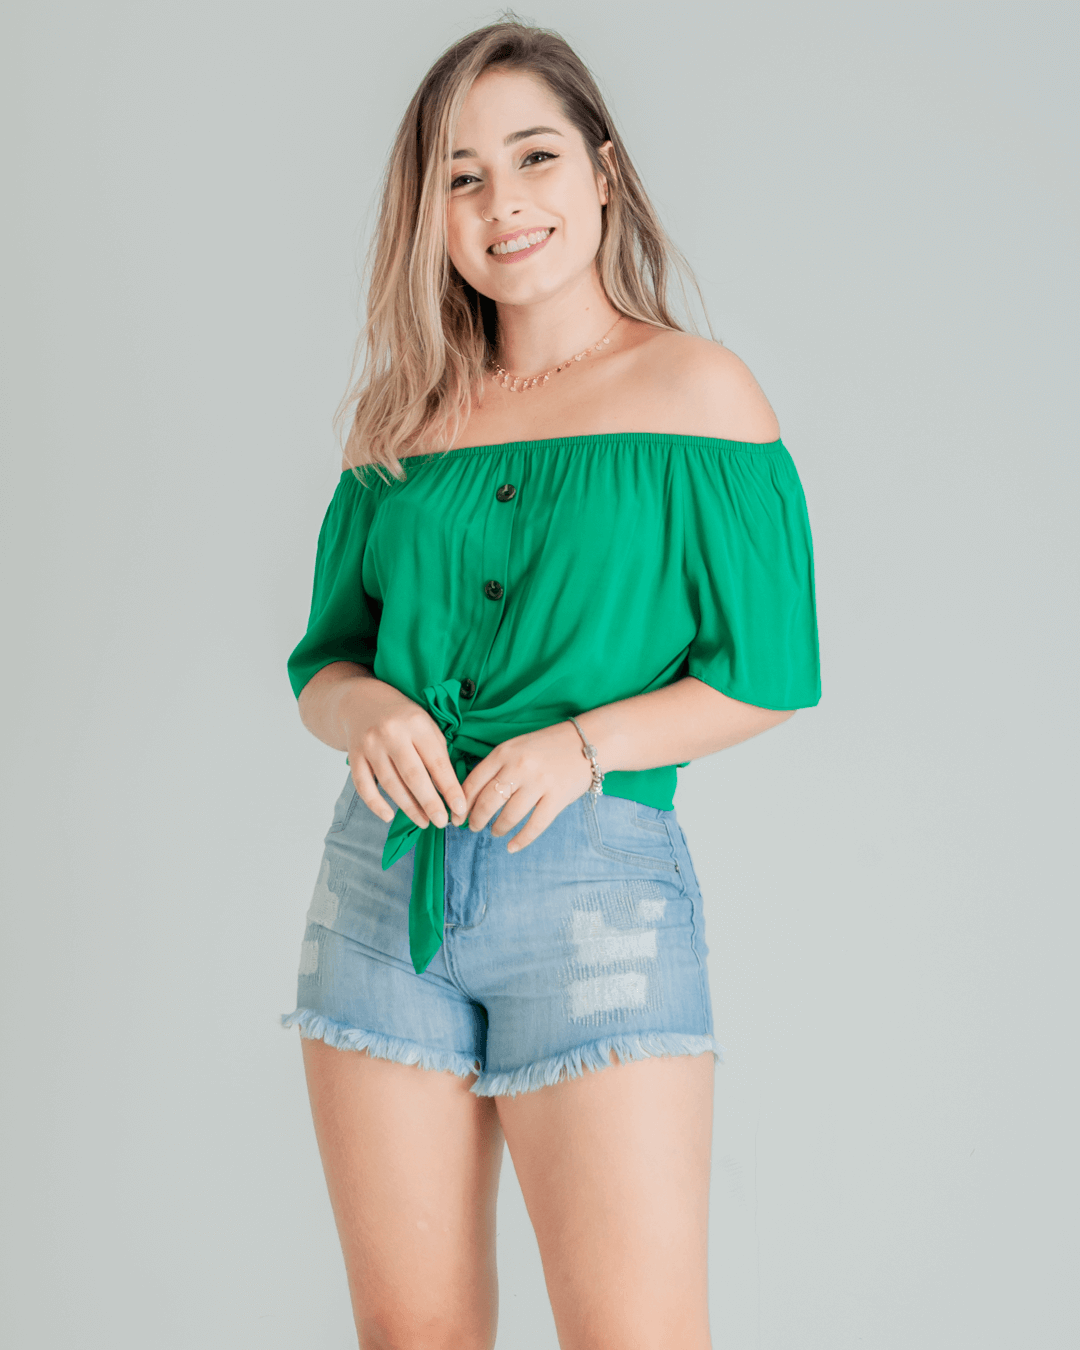 Blusa-Feminina-Color-Jane---C40719